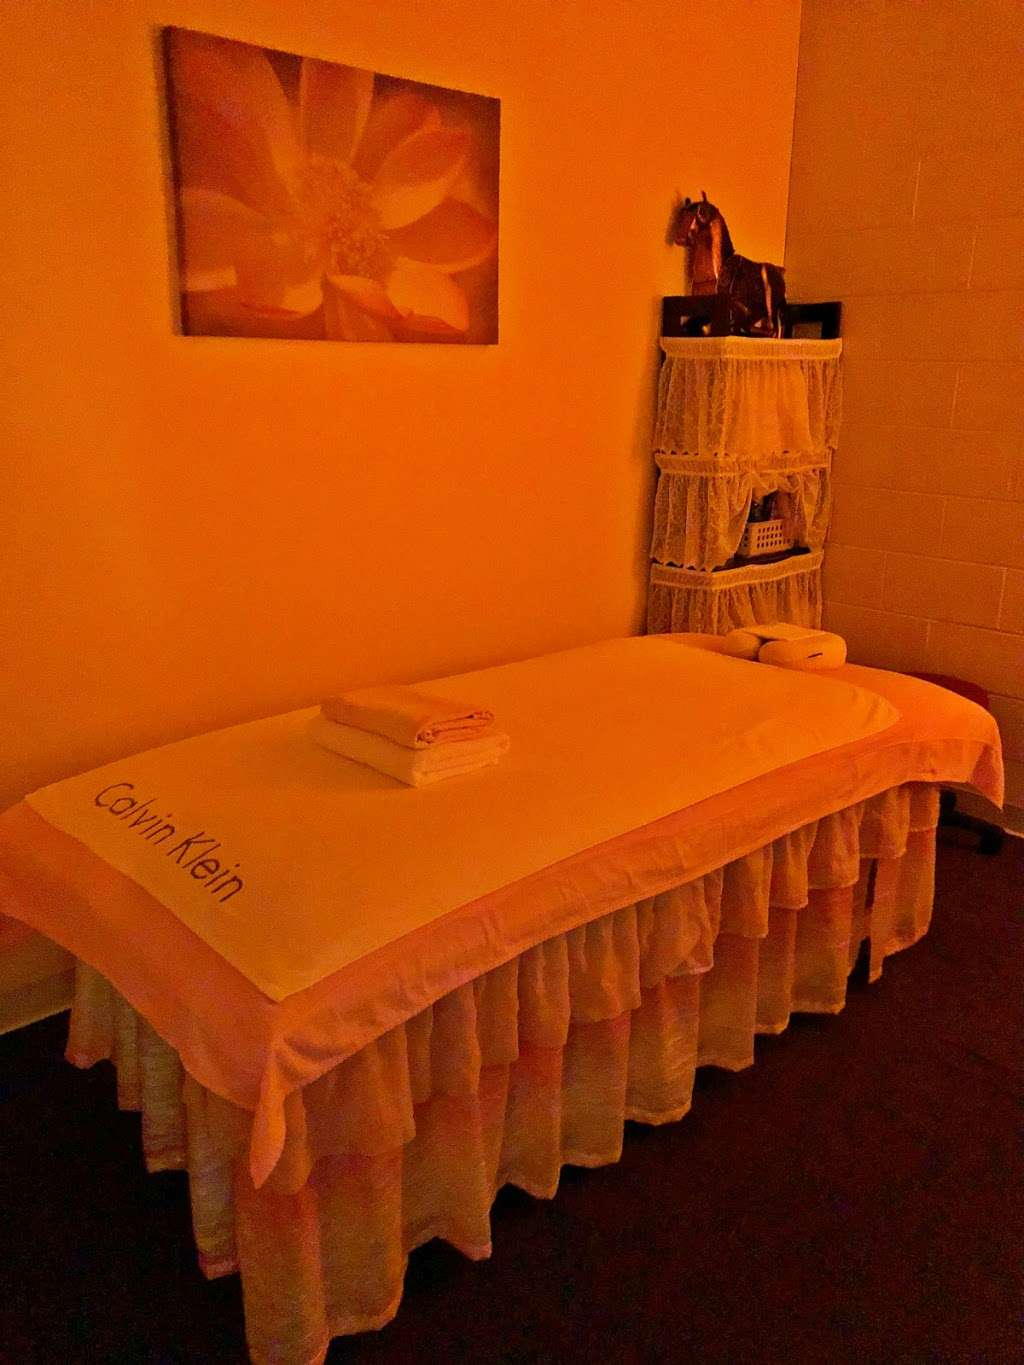 Stress Relief Spa - spa  | Photo 1 of 10 | Address: 2047 S Black Horse Pike, Williamstown, NJ 08094, USA | Phone: (856) 503-9969